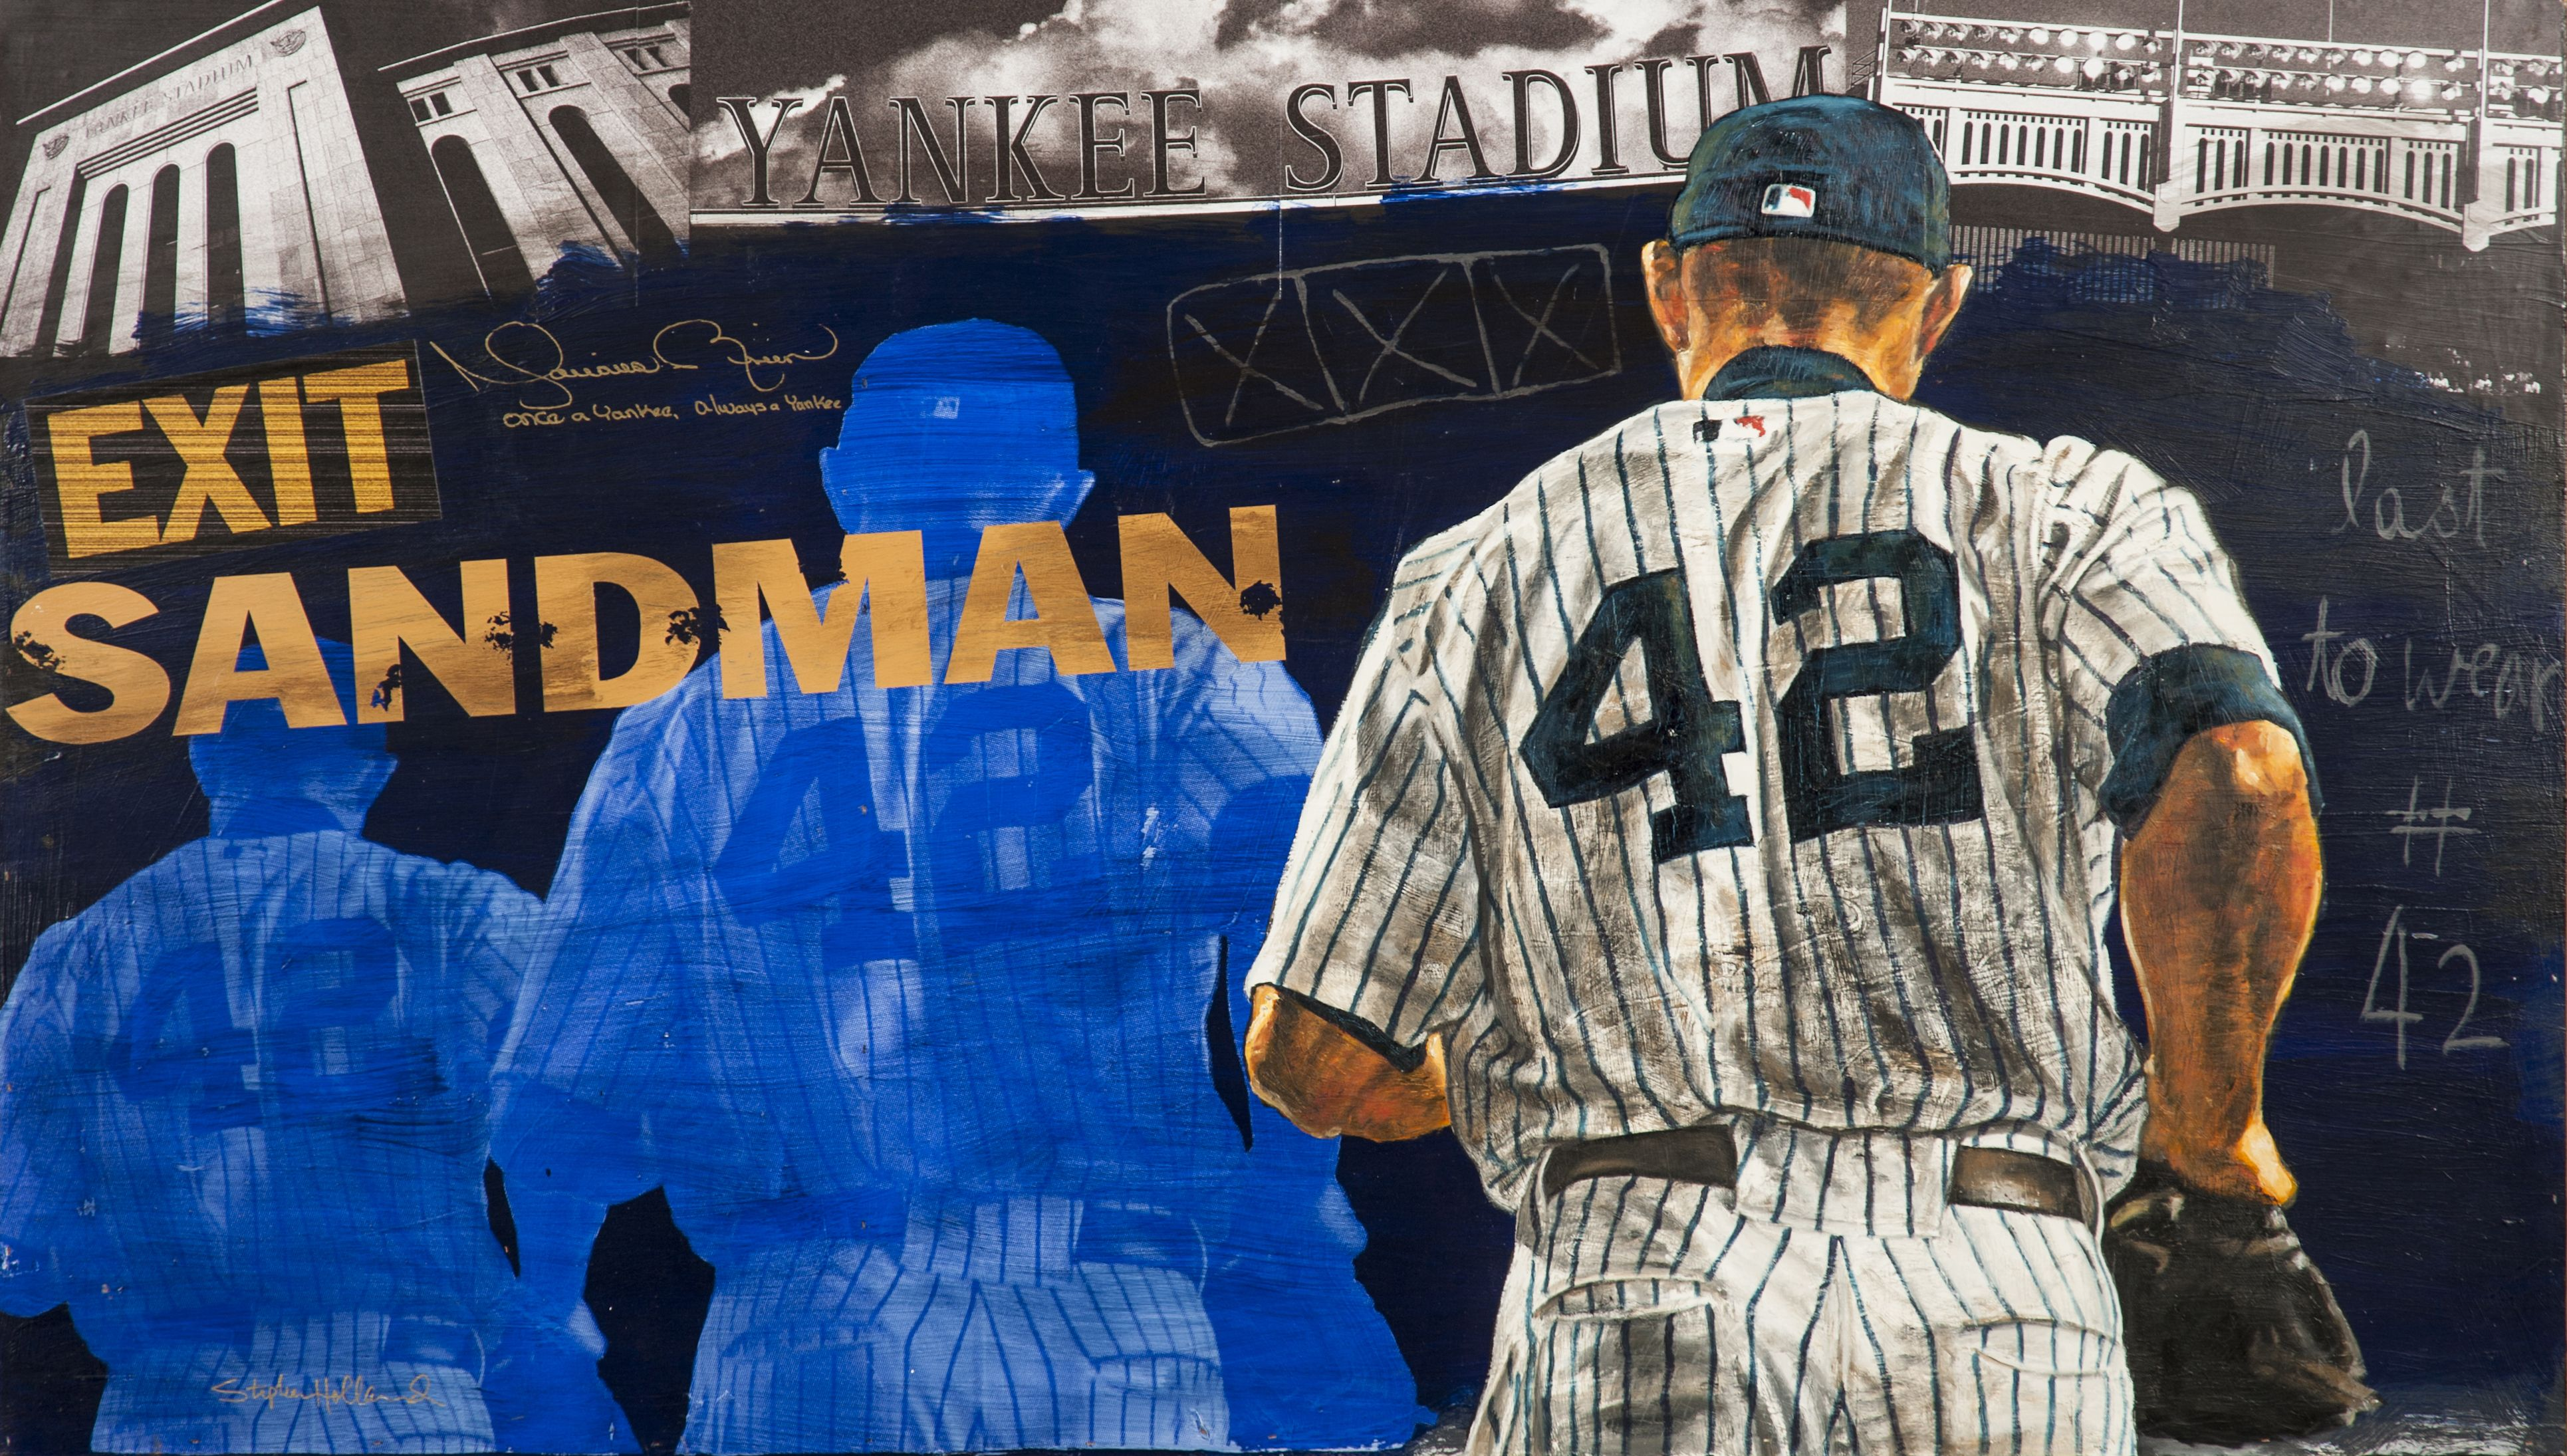 Auction Prices Realized Mariano Rivera Very Large Signed Stephen Holland Original Painting 8 887 50 Art Sportsart Marianoriv Sports Sandman Editions Mr